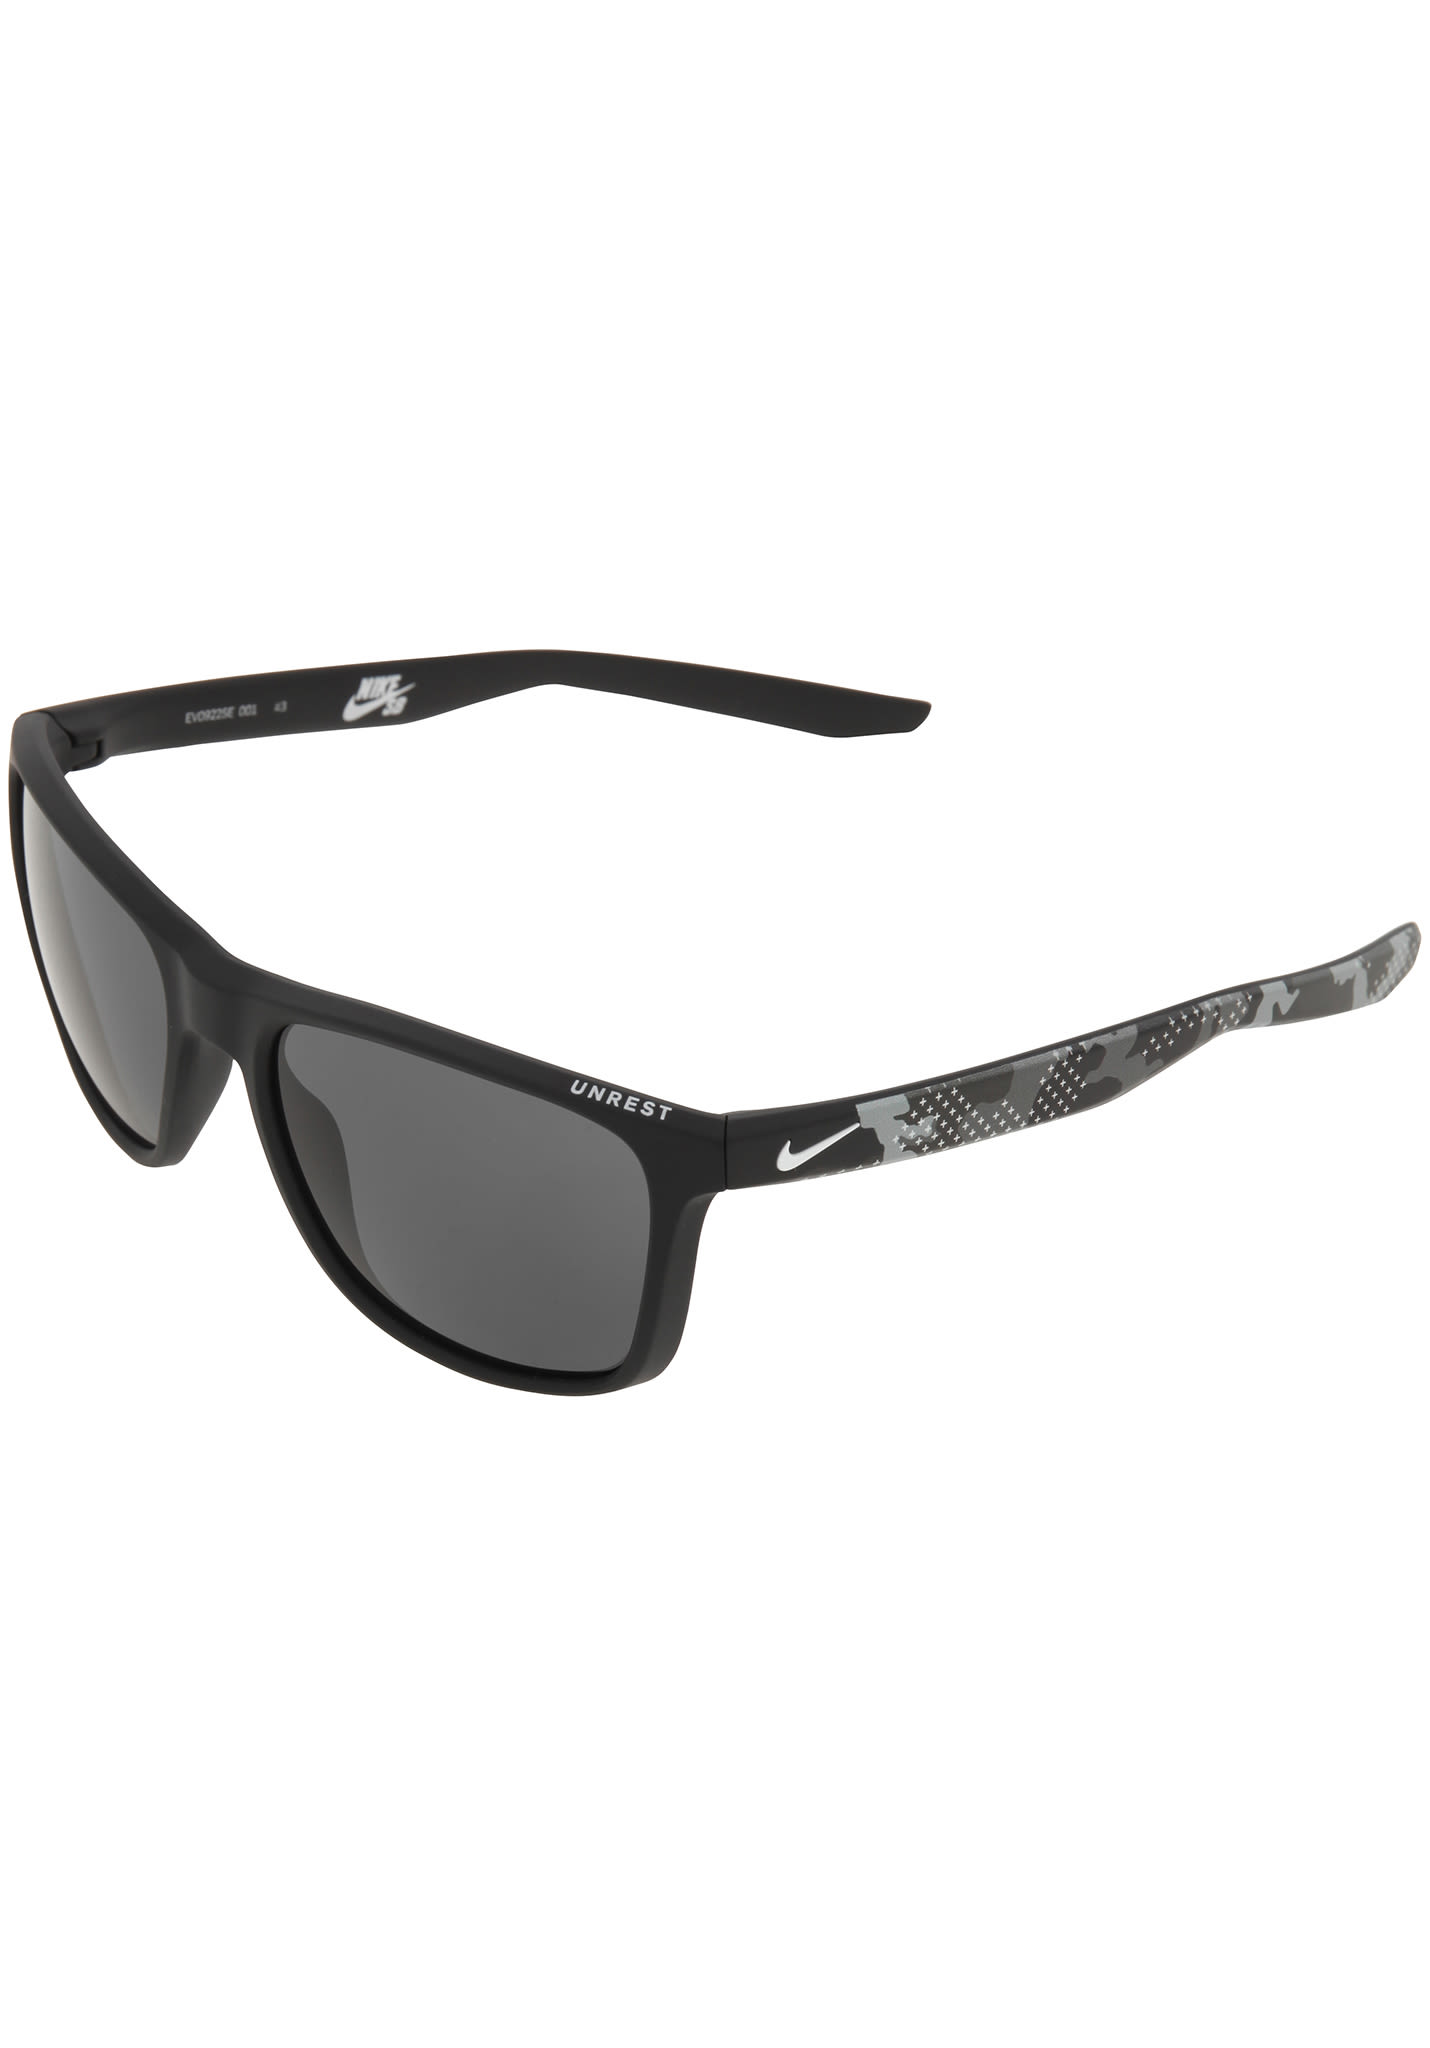 a5c235be3ef NIKE VISION Unrest - Sunglasses - Black - Planet Sports